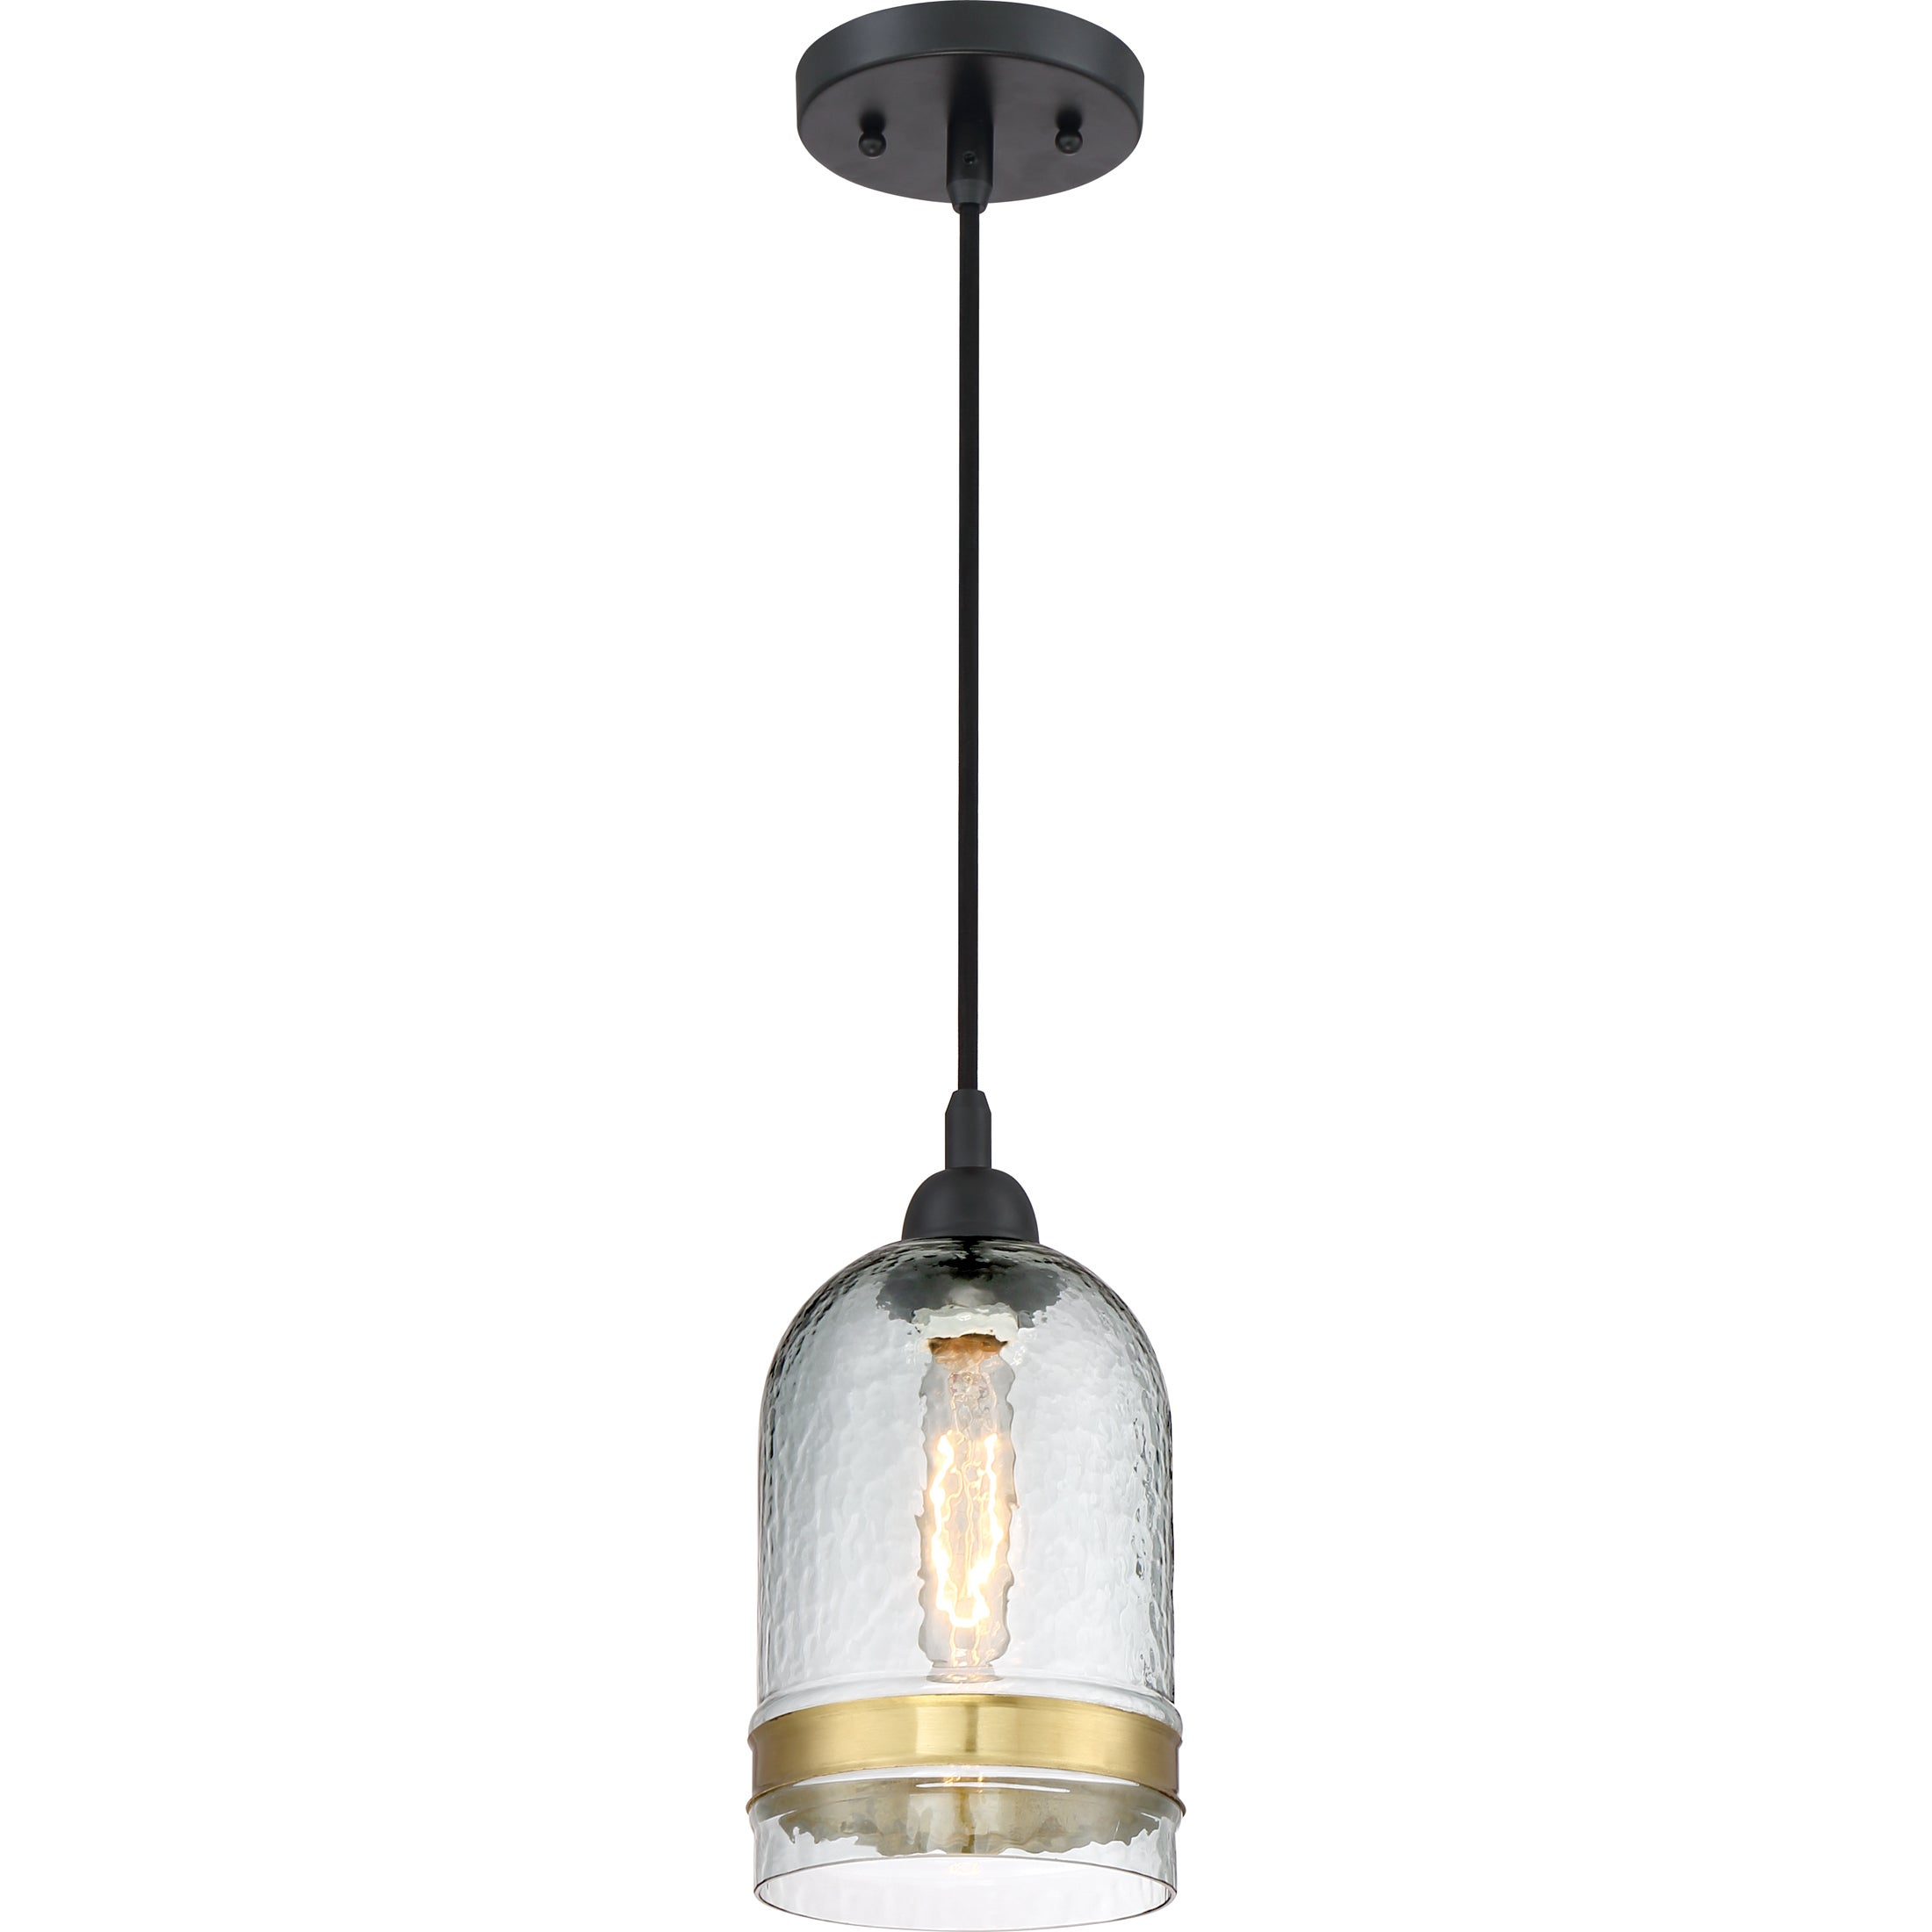 mini light black home lighting chapman the trends comfort table visual bay pendant pendants lamps fixtures attachment